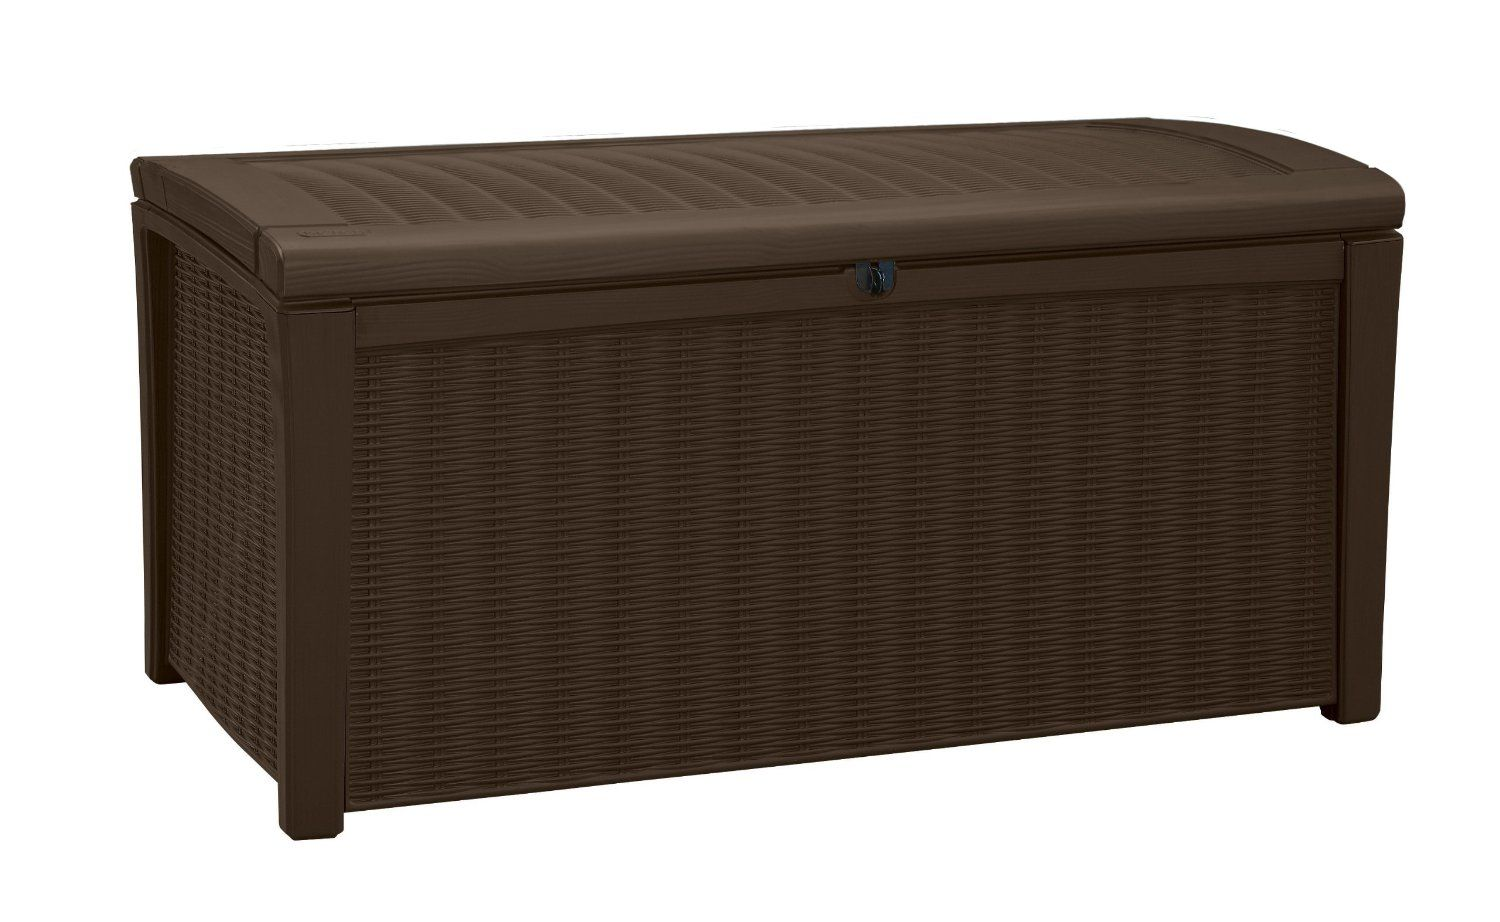 Keter Borneo Plastic Storage Box Container Outdoor Garden Furniture  416 L    Brown  Amazon. Keter Borneo Plastic Storage Box Container Outdoor Garden